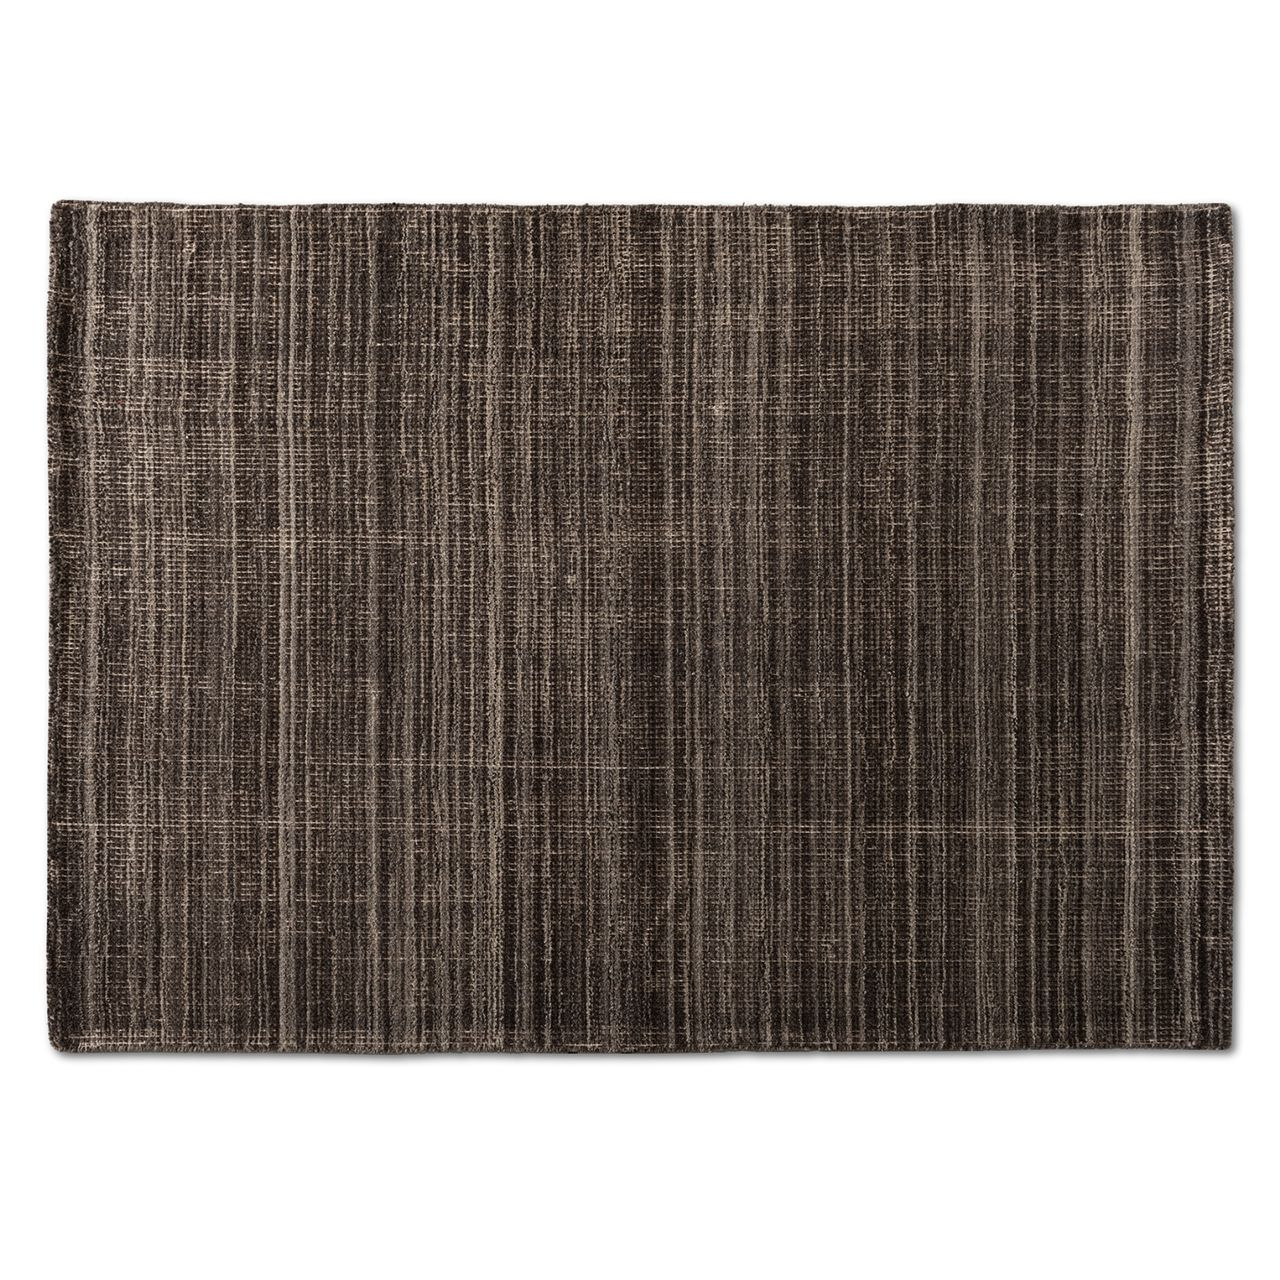 Baxton Studio Medanos Charcoal and Ivory Handwoven Wool Area Rug